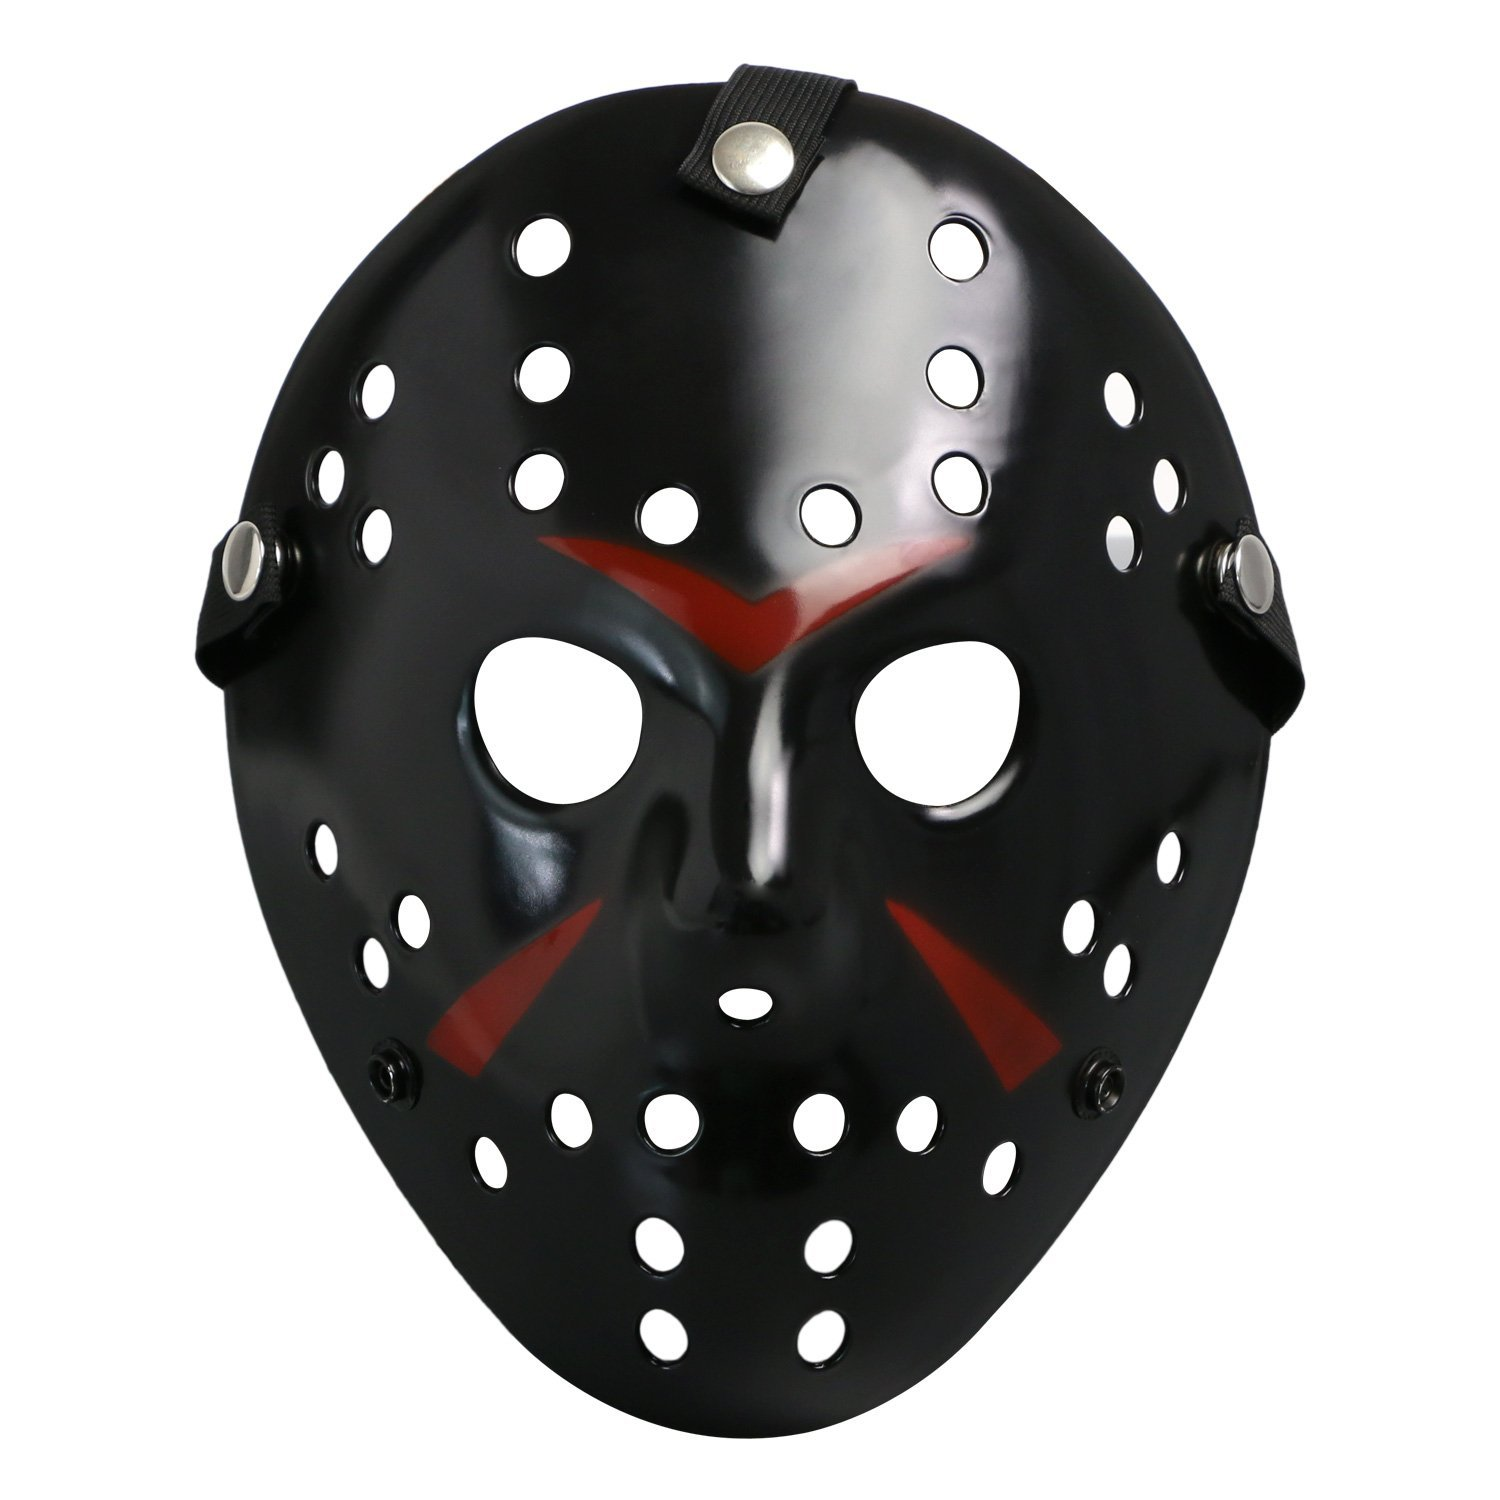 Amazon.com CASACLAUSI Costume Mask Prop Horror Hockey Halloween Cosplay Party Clothing  sc 1 st  Amazon.com & Amazon.com: CASACLAUSI Costume Mask Prop Horror Hockey Halloween ...